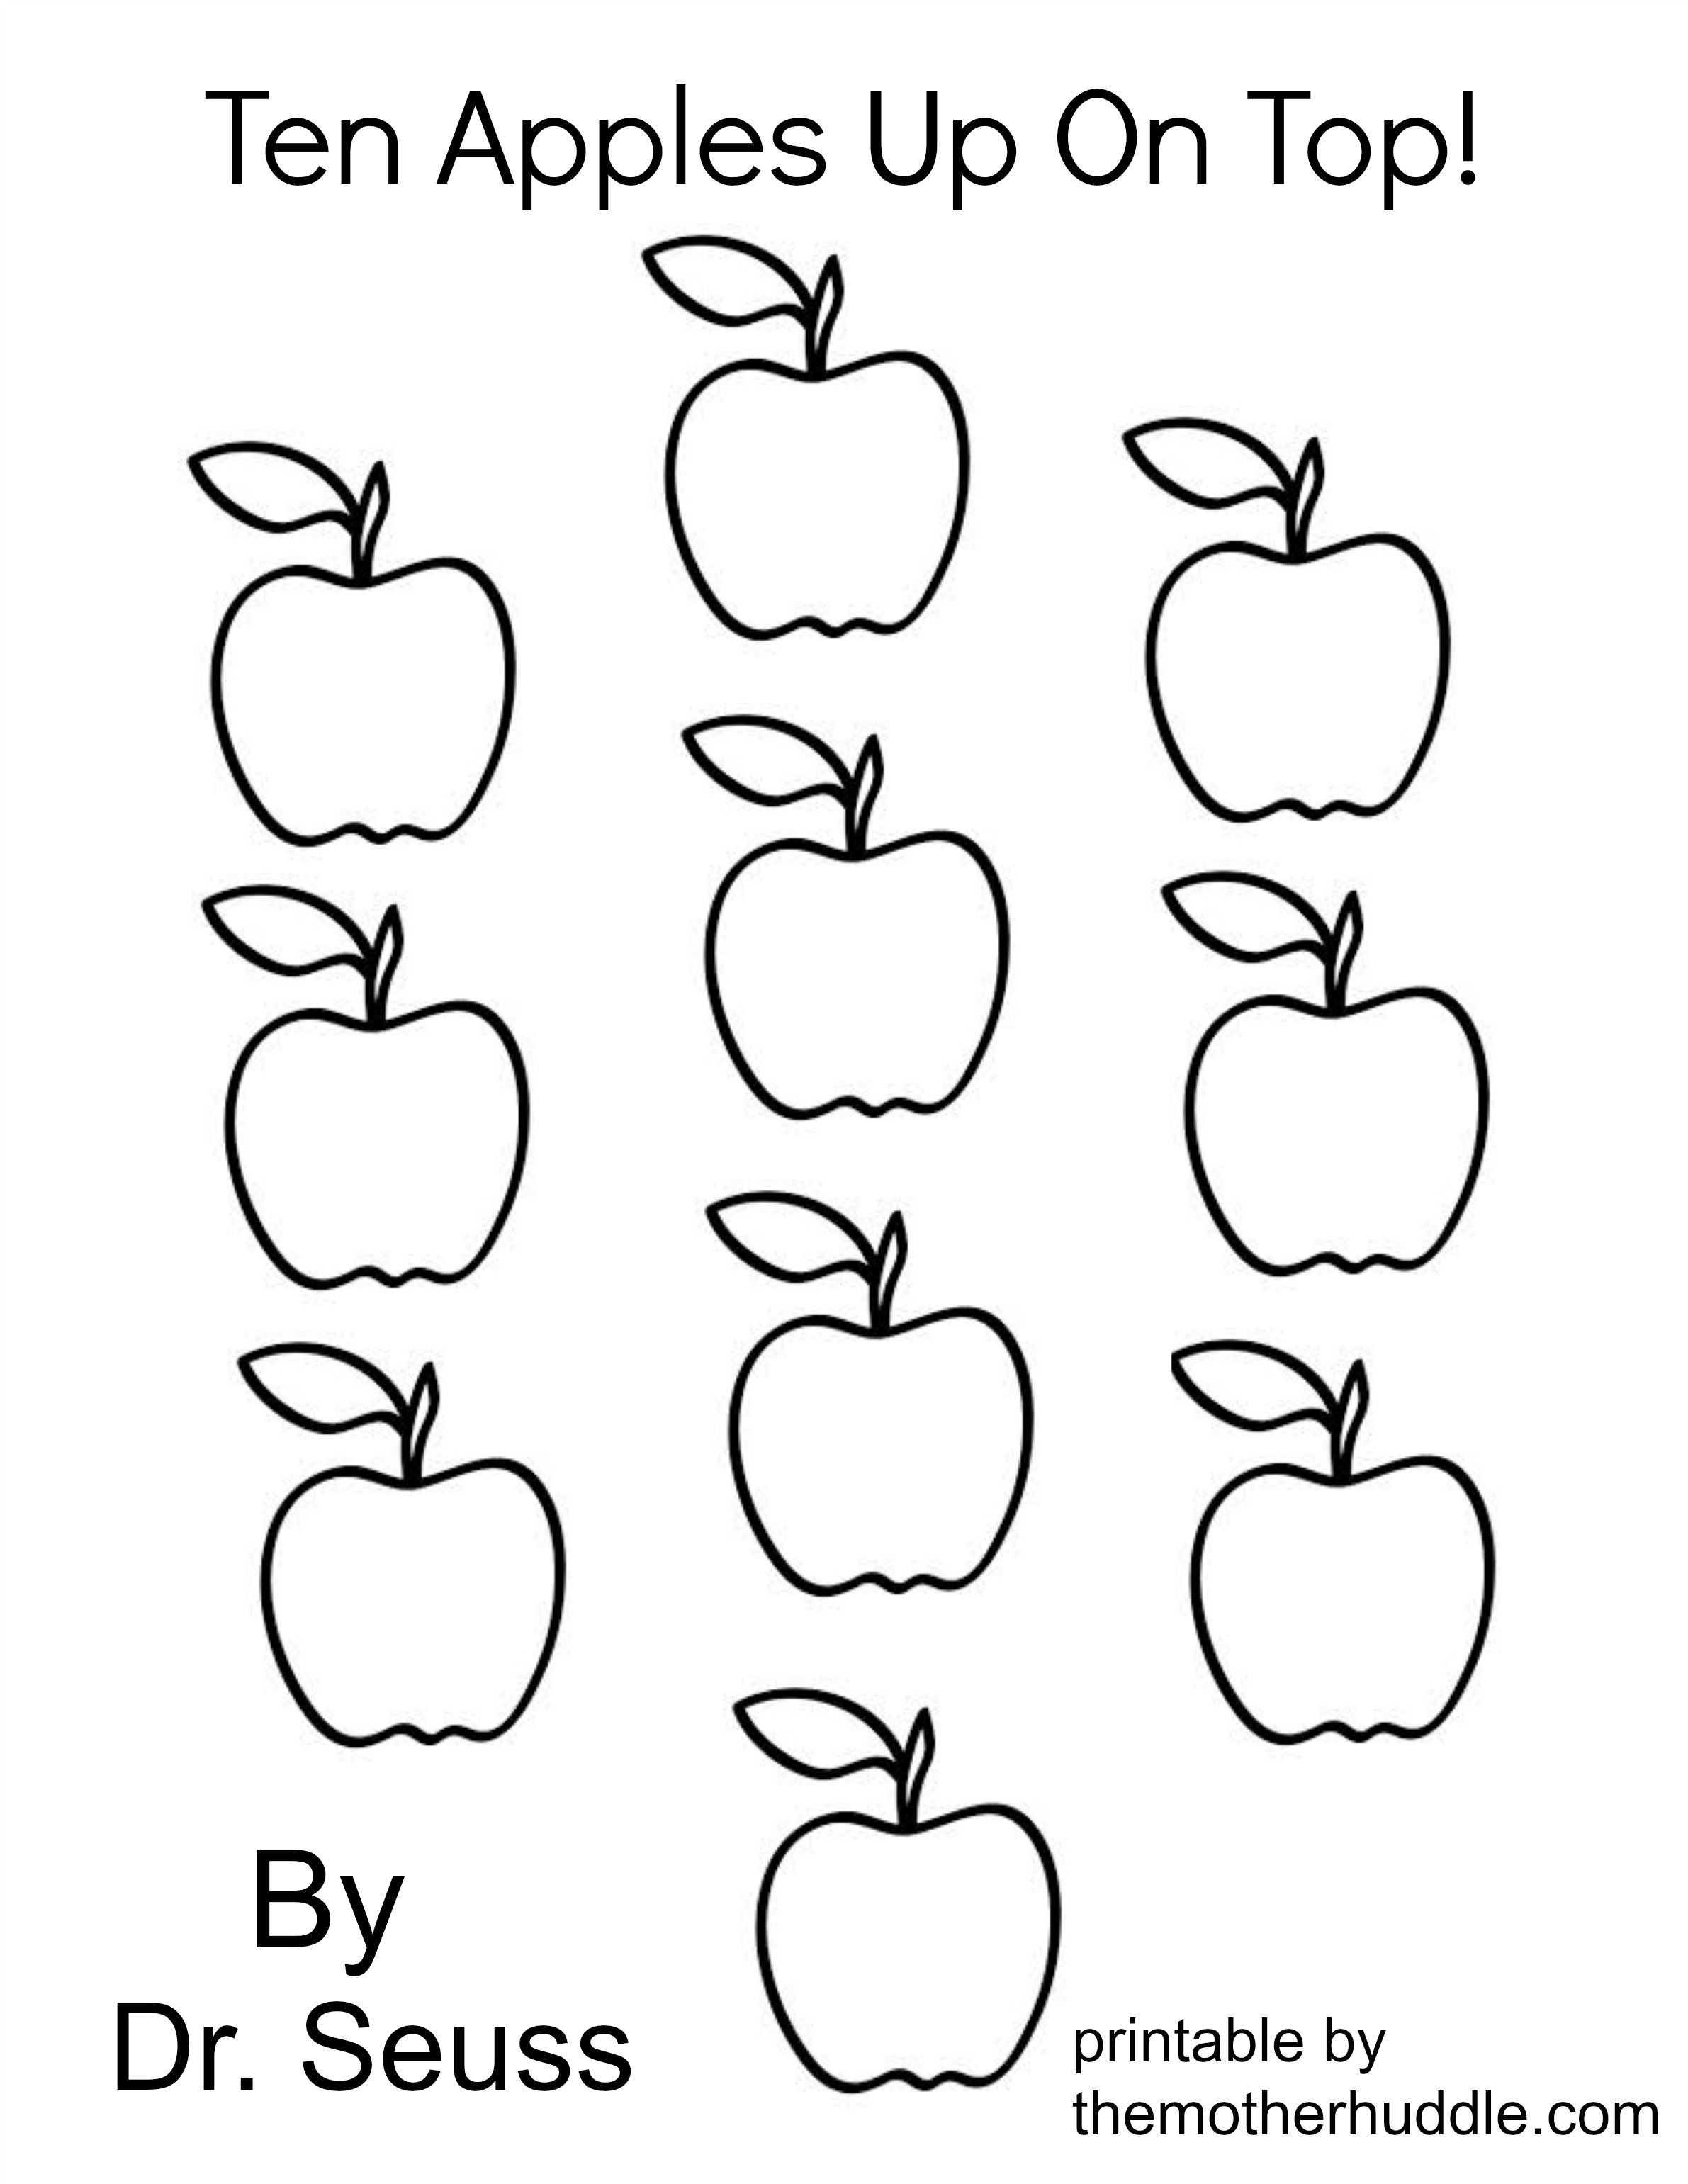 Ten Apples Up On Top Coloring Pages